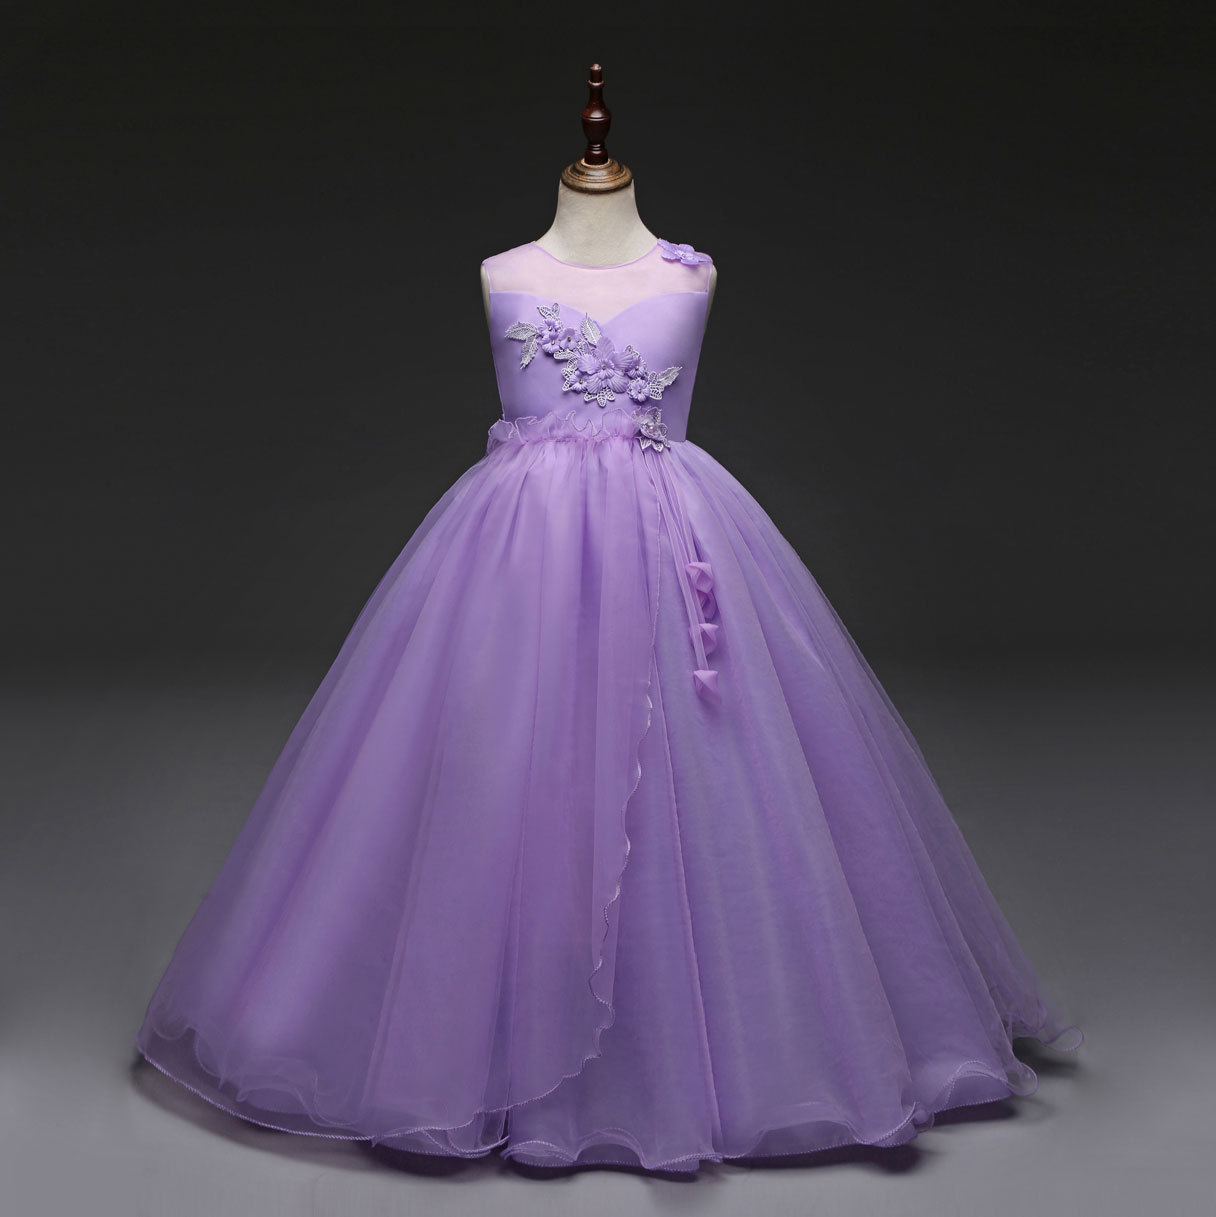 93cd189774a6d European Style Graduation Gowns Children Special Occasion Prom ...